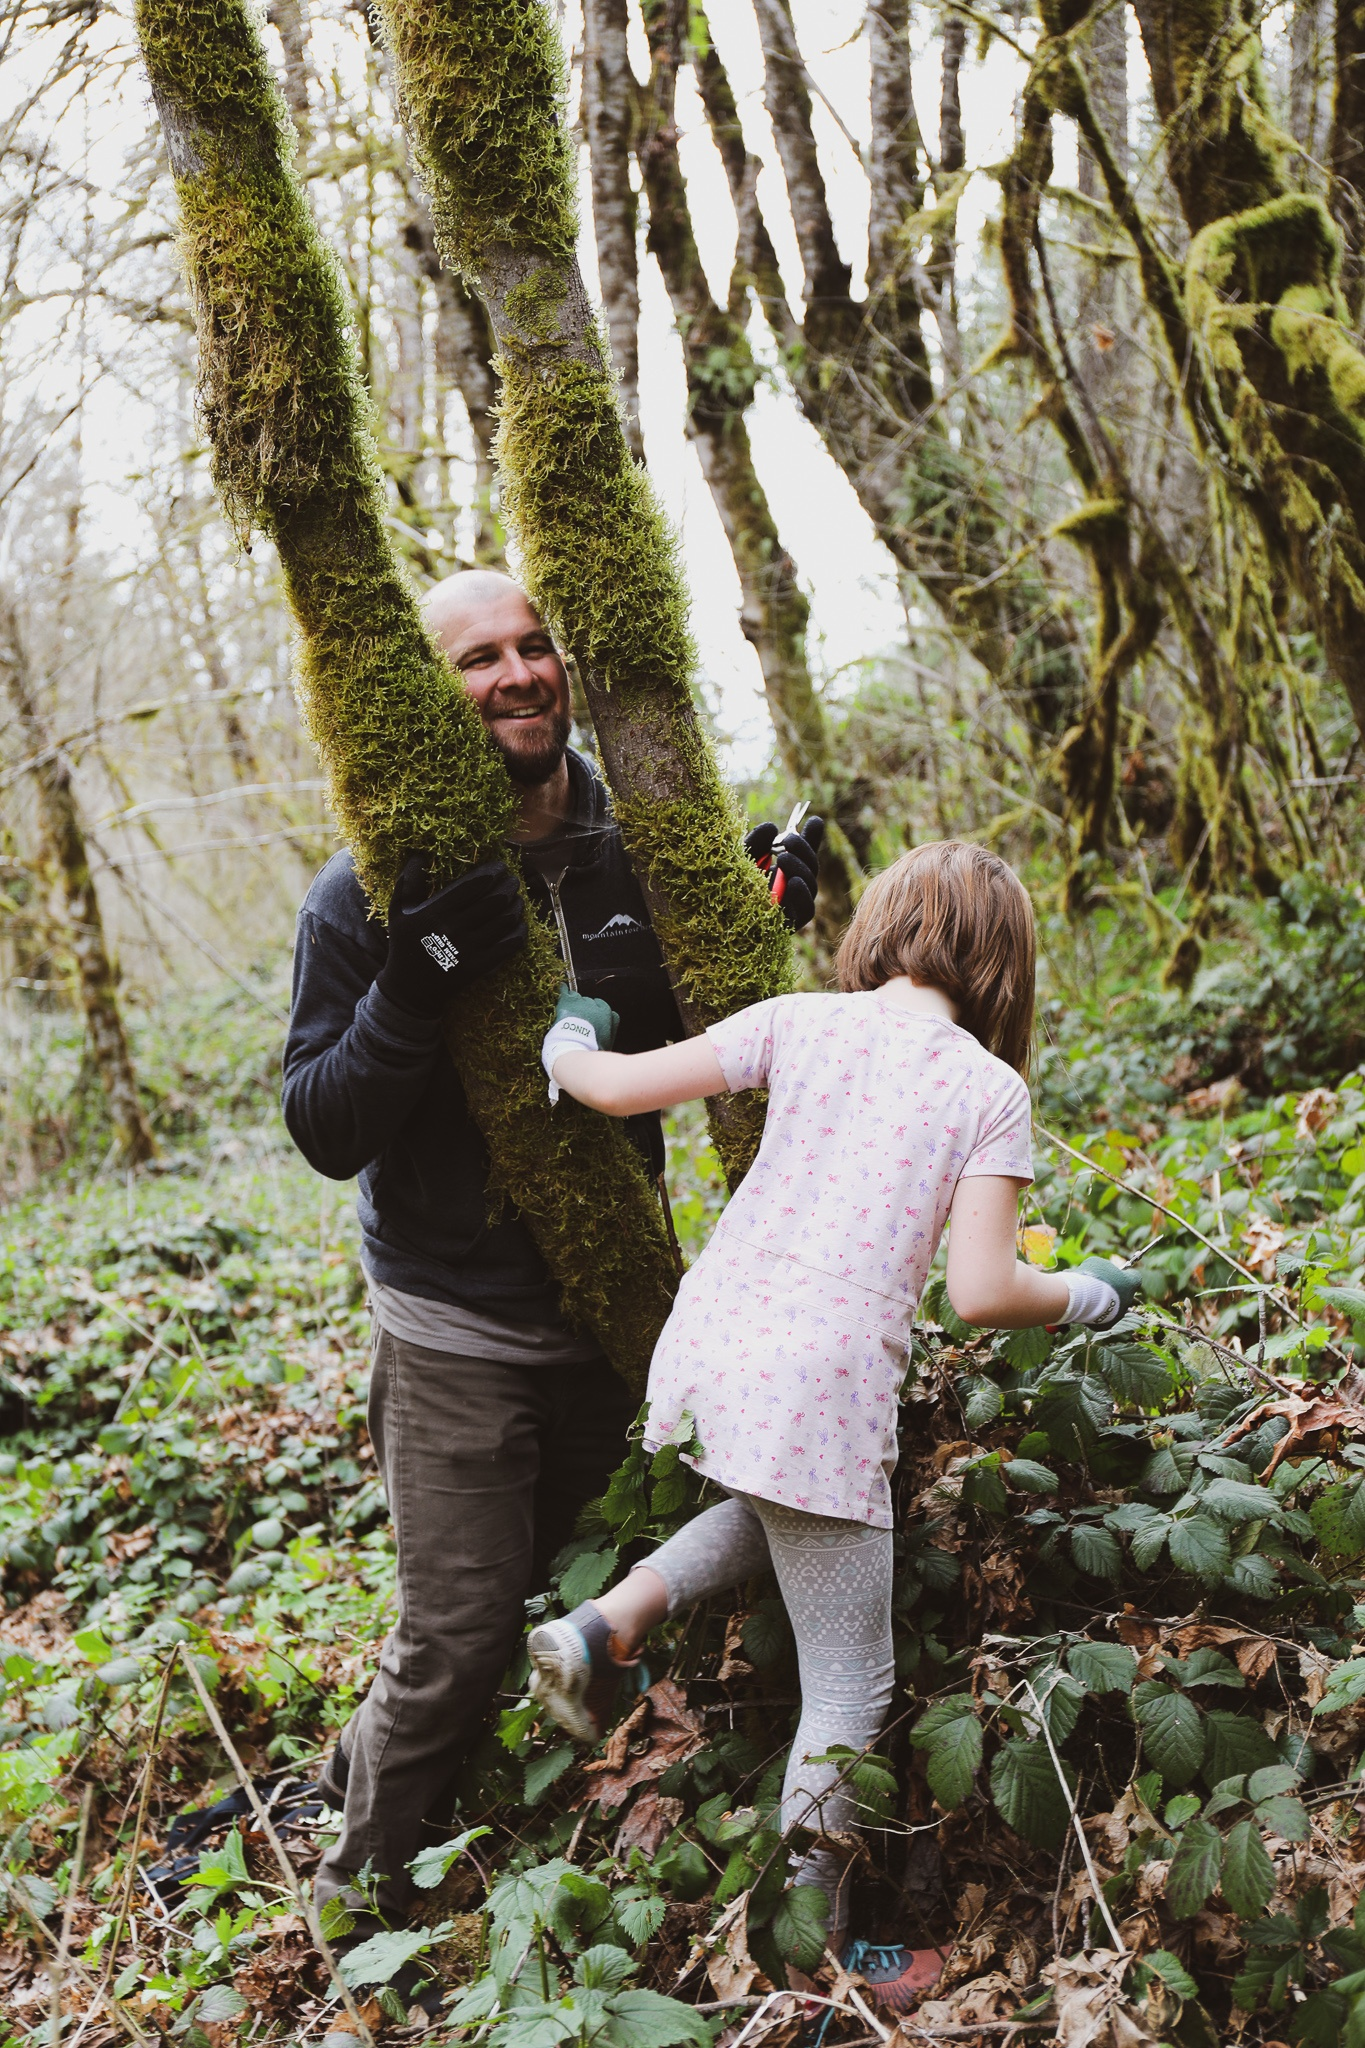 Father and daughter in forest playing and touching trees